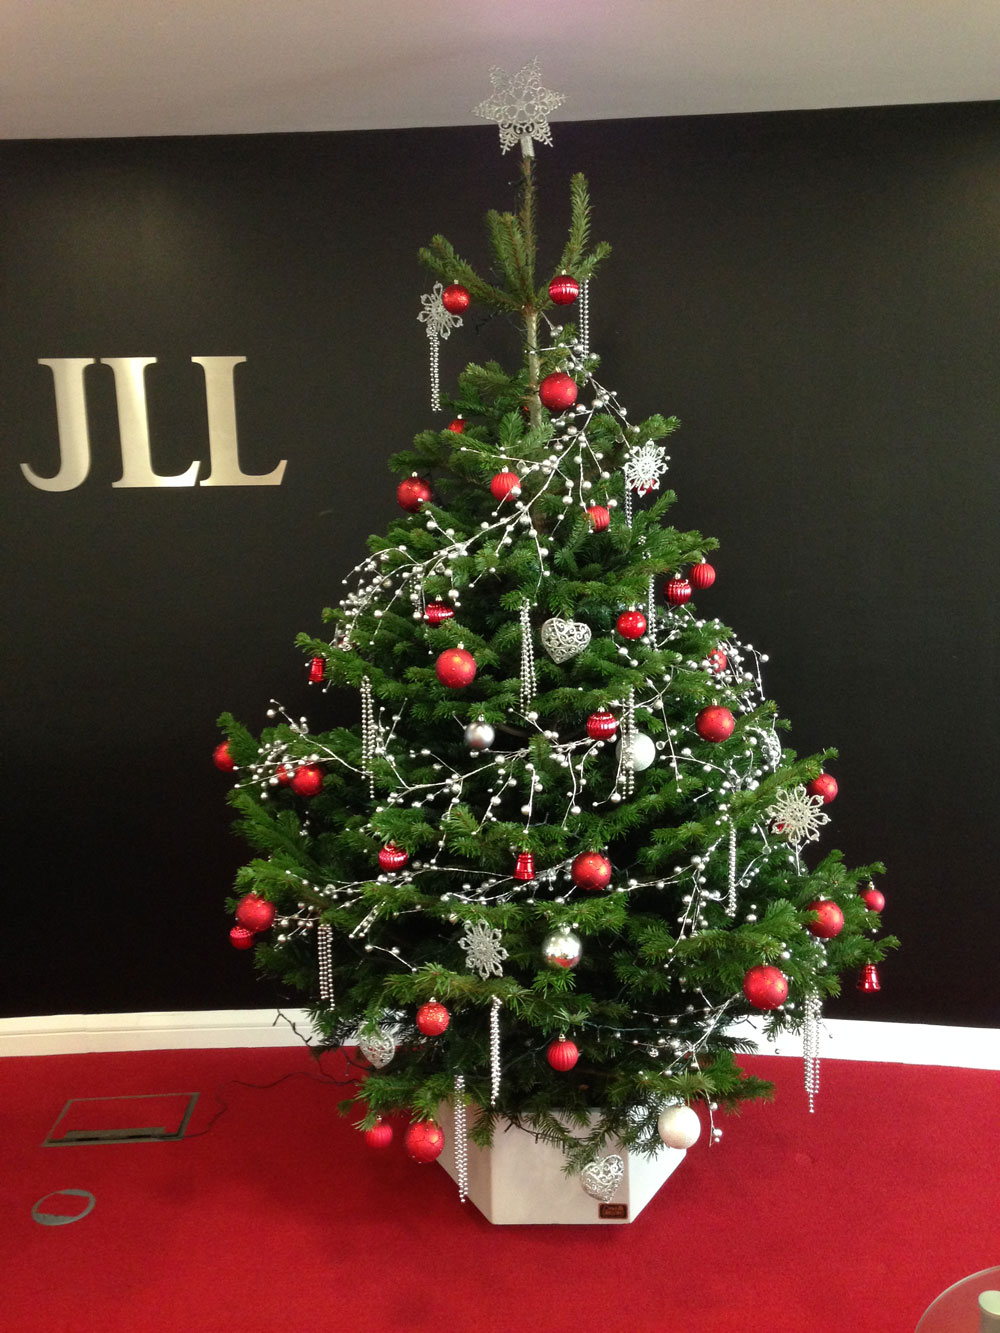 Images of Christmas Trees | Office Landscapes